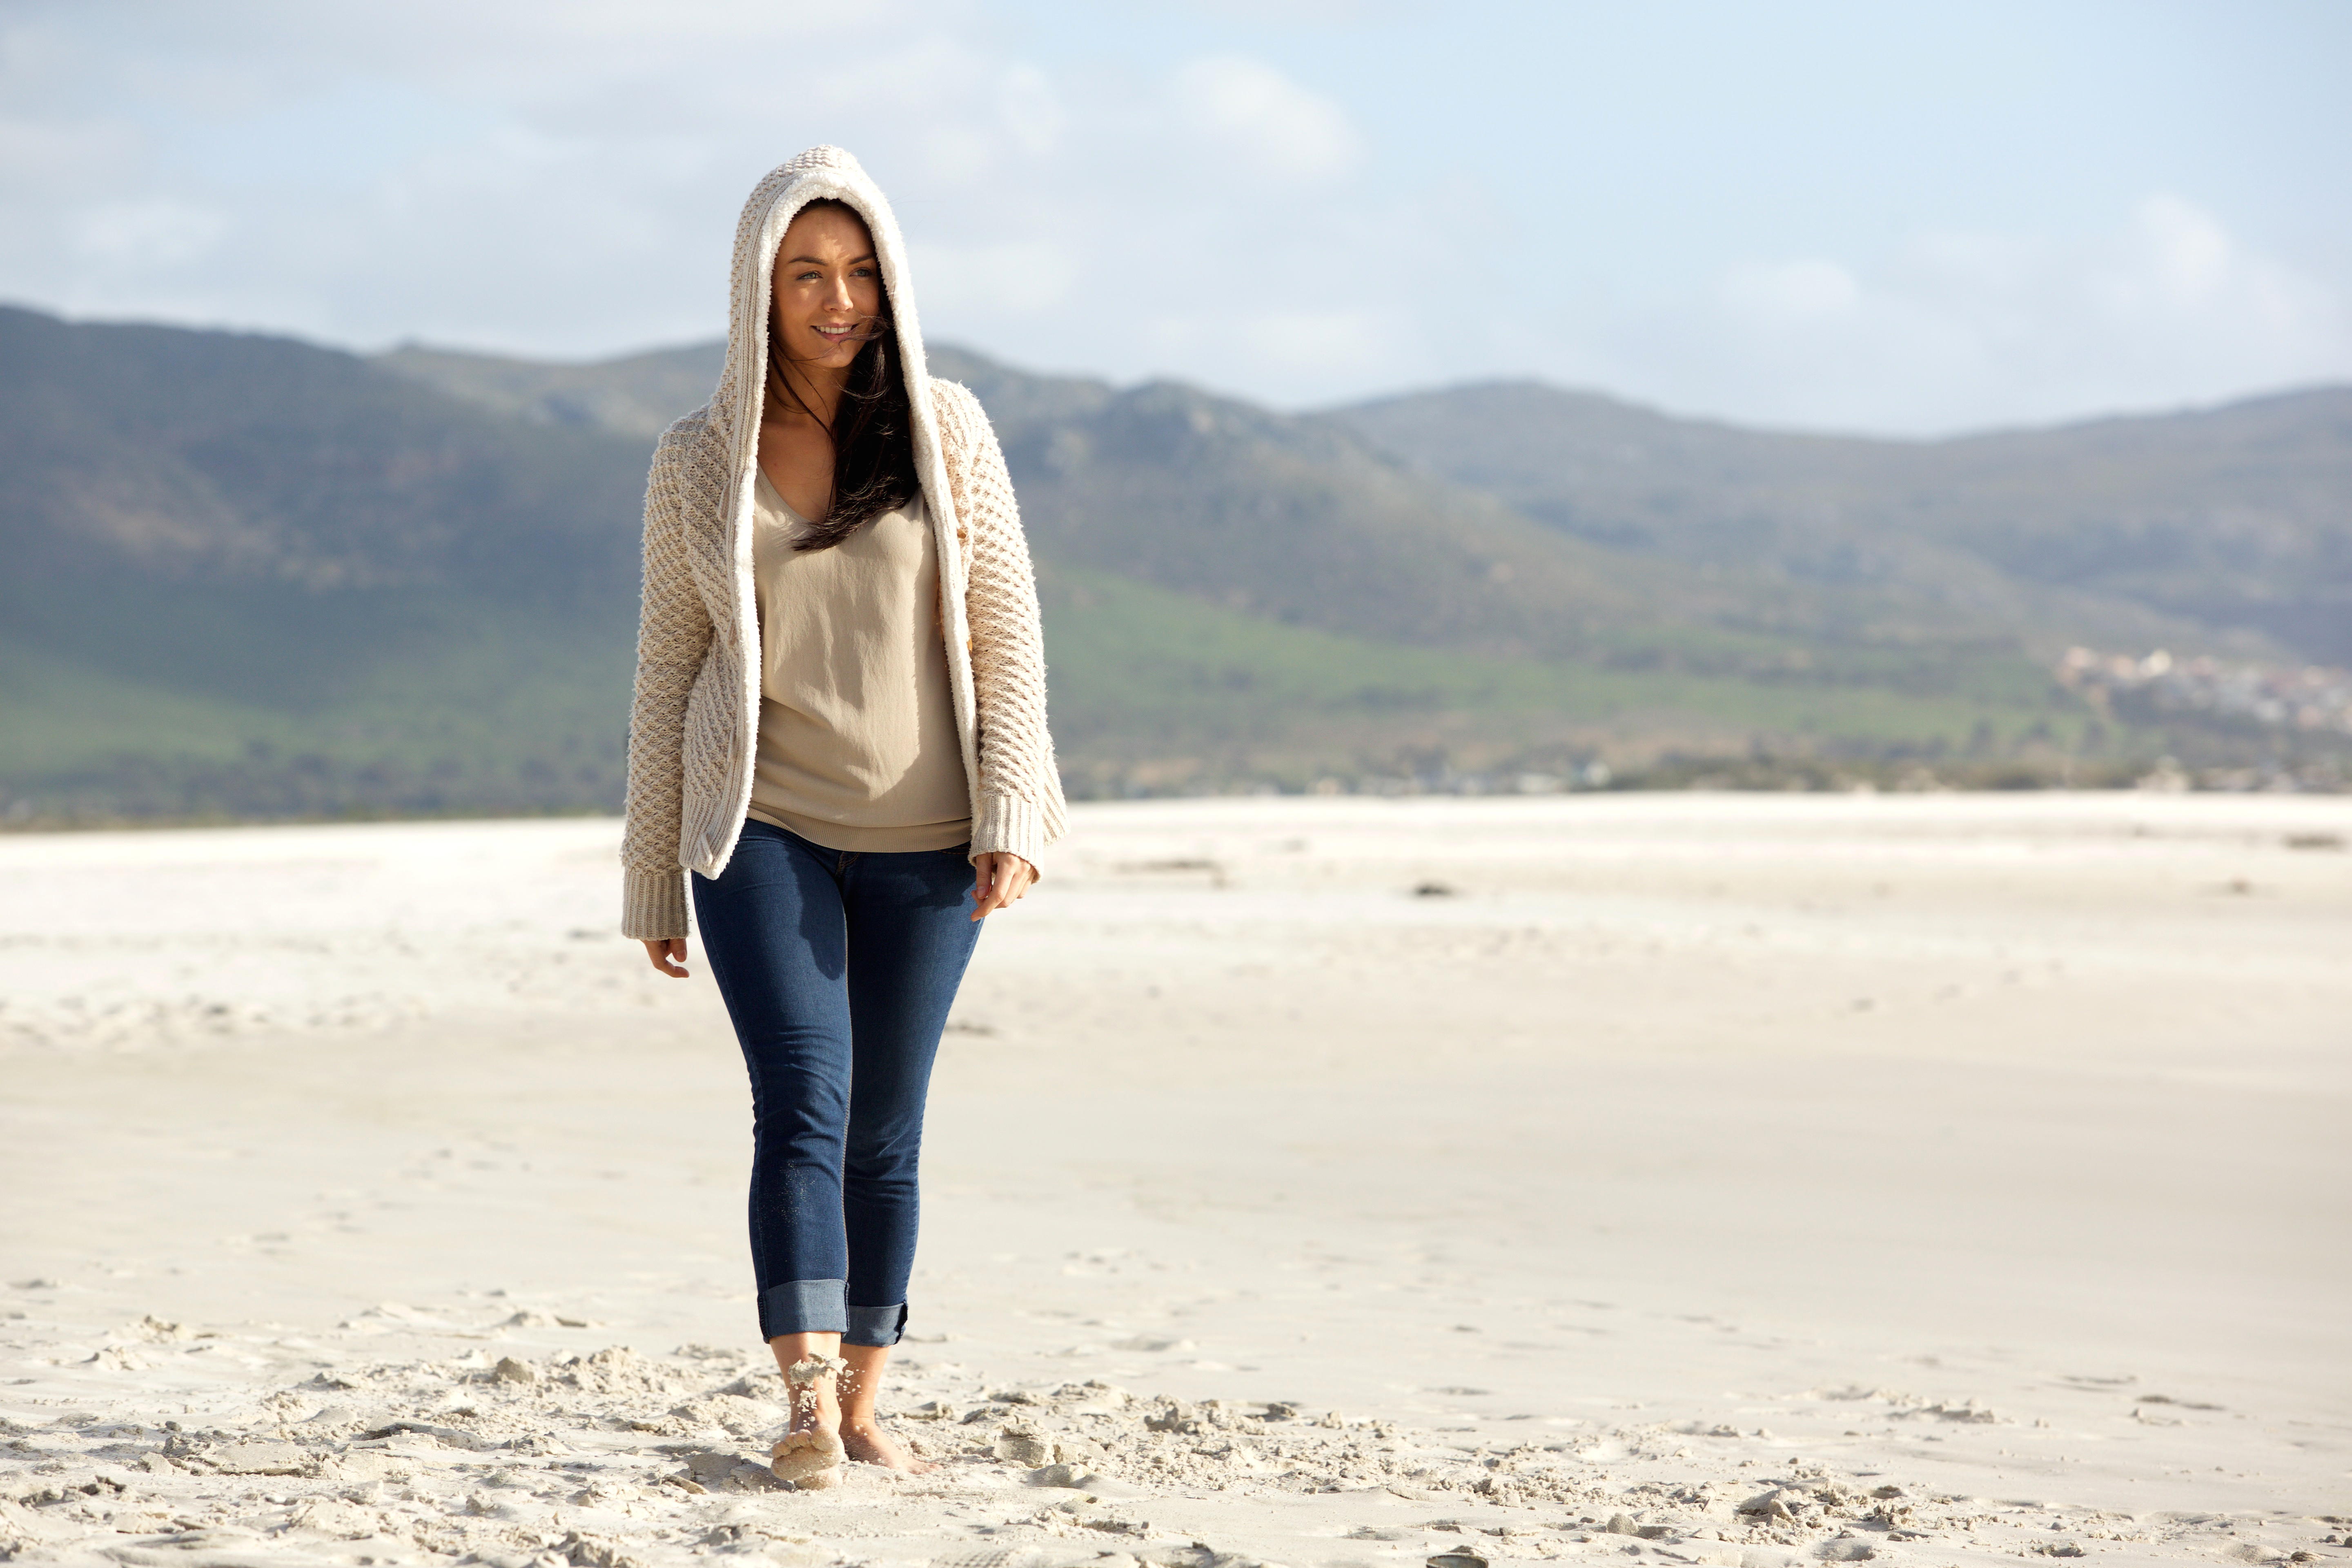 young-woman-walking-at-the-beach-PUVEP2Z.jpg